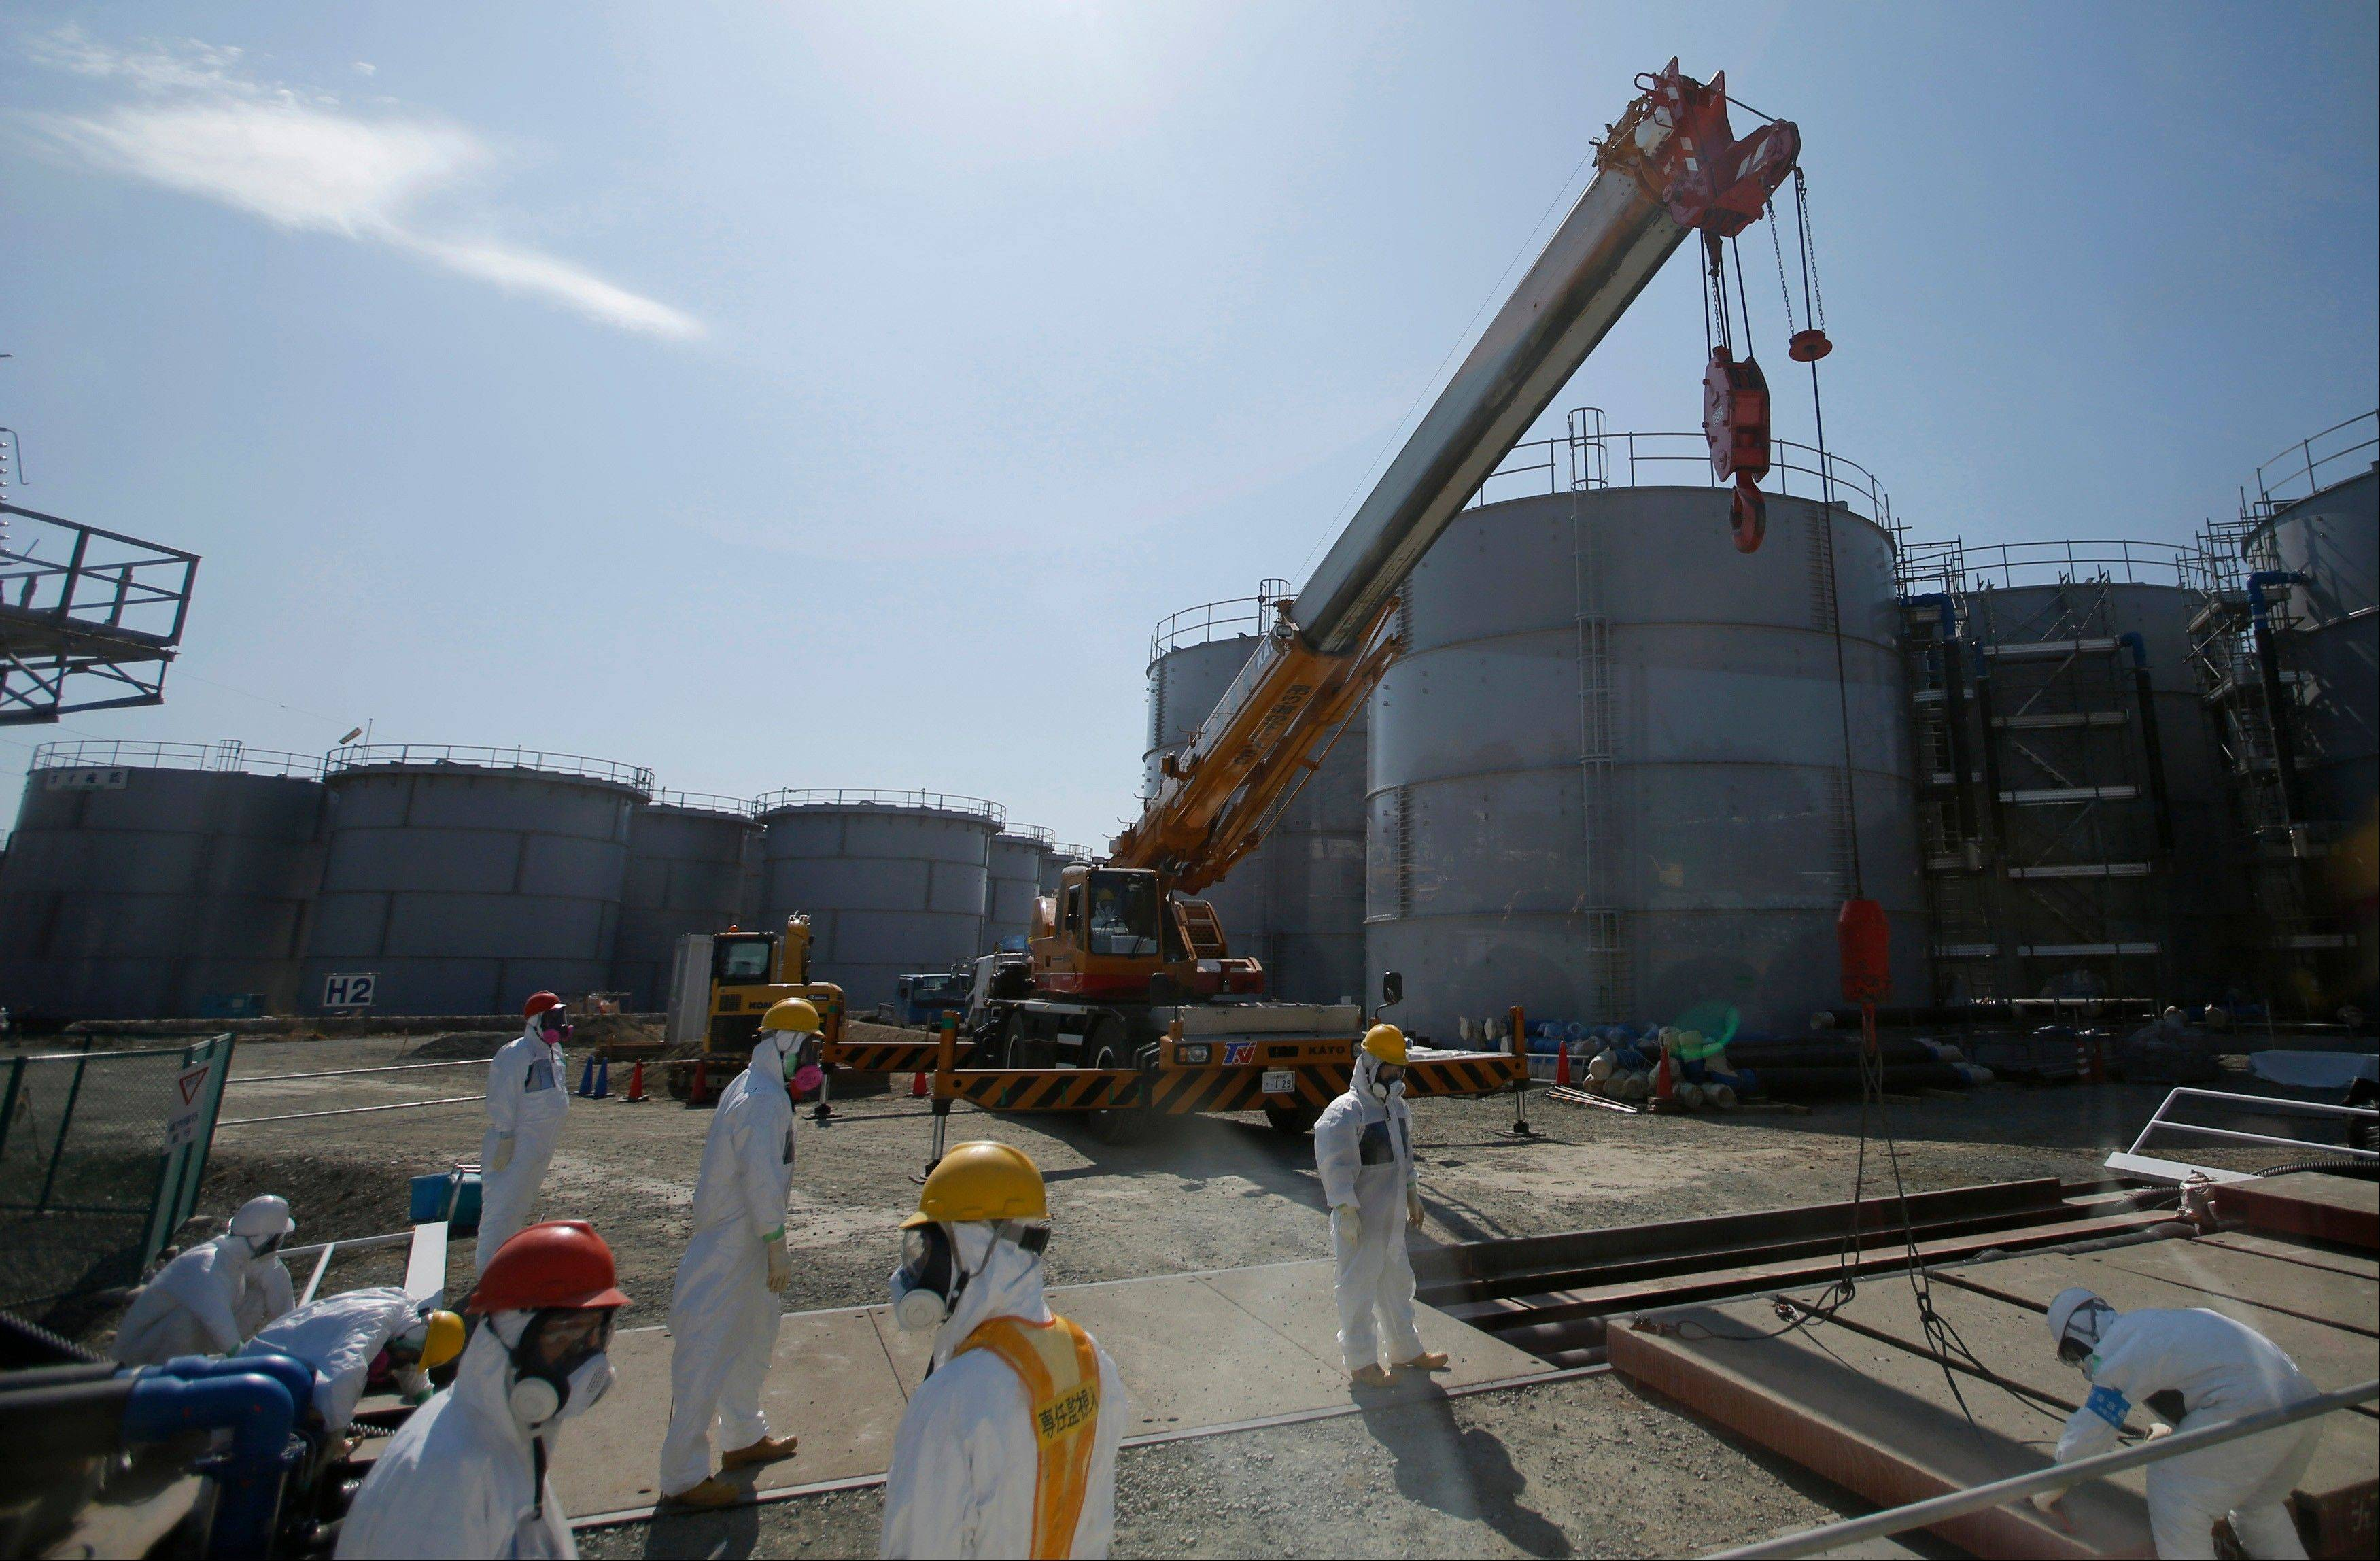 Workers wearing protective gear take a survey near tanks of radiation contaminated water at Tokyo Electric Power Co.�s Fukushima Dai-ichi nuclear power plant in Okuma town, northeast of Tokyo. The operator of the wrecked Fukushima nuclear power plant says it is struggling with its latest efforts to stop contaminated underground water leaks from running into the sea.